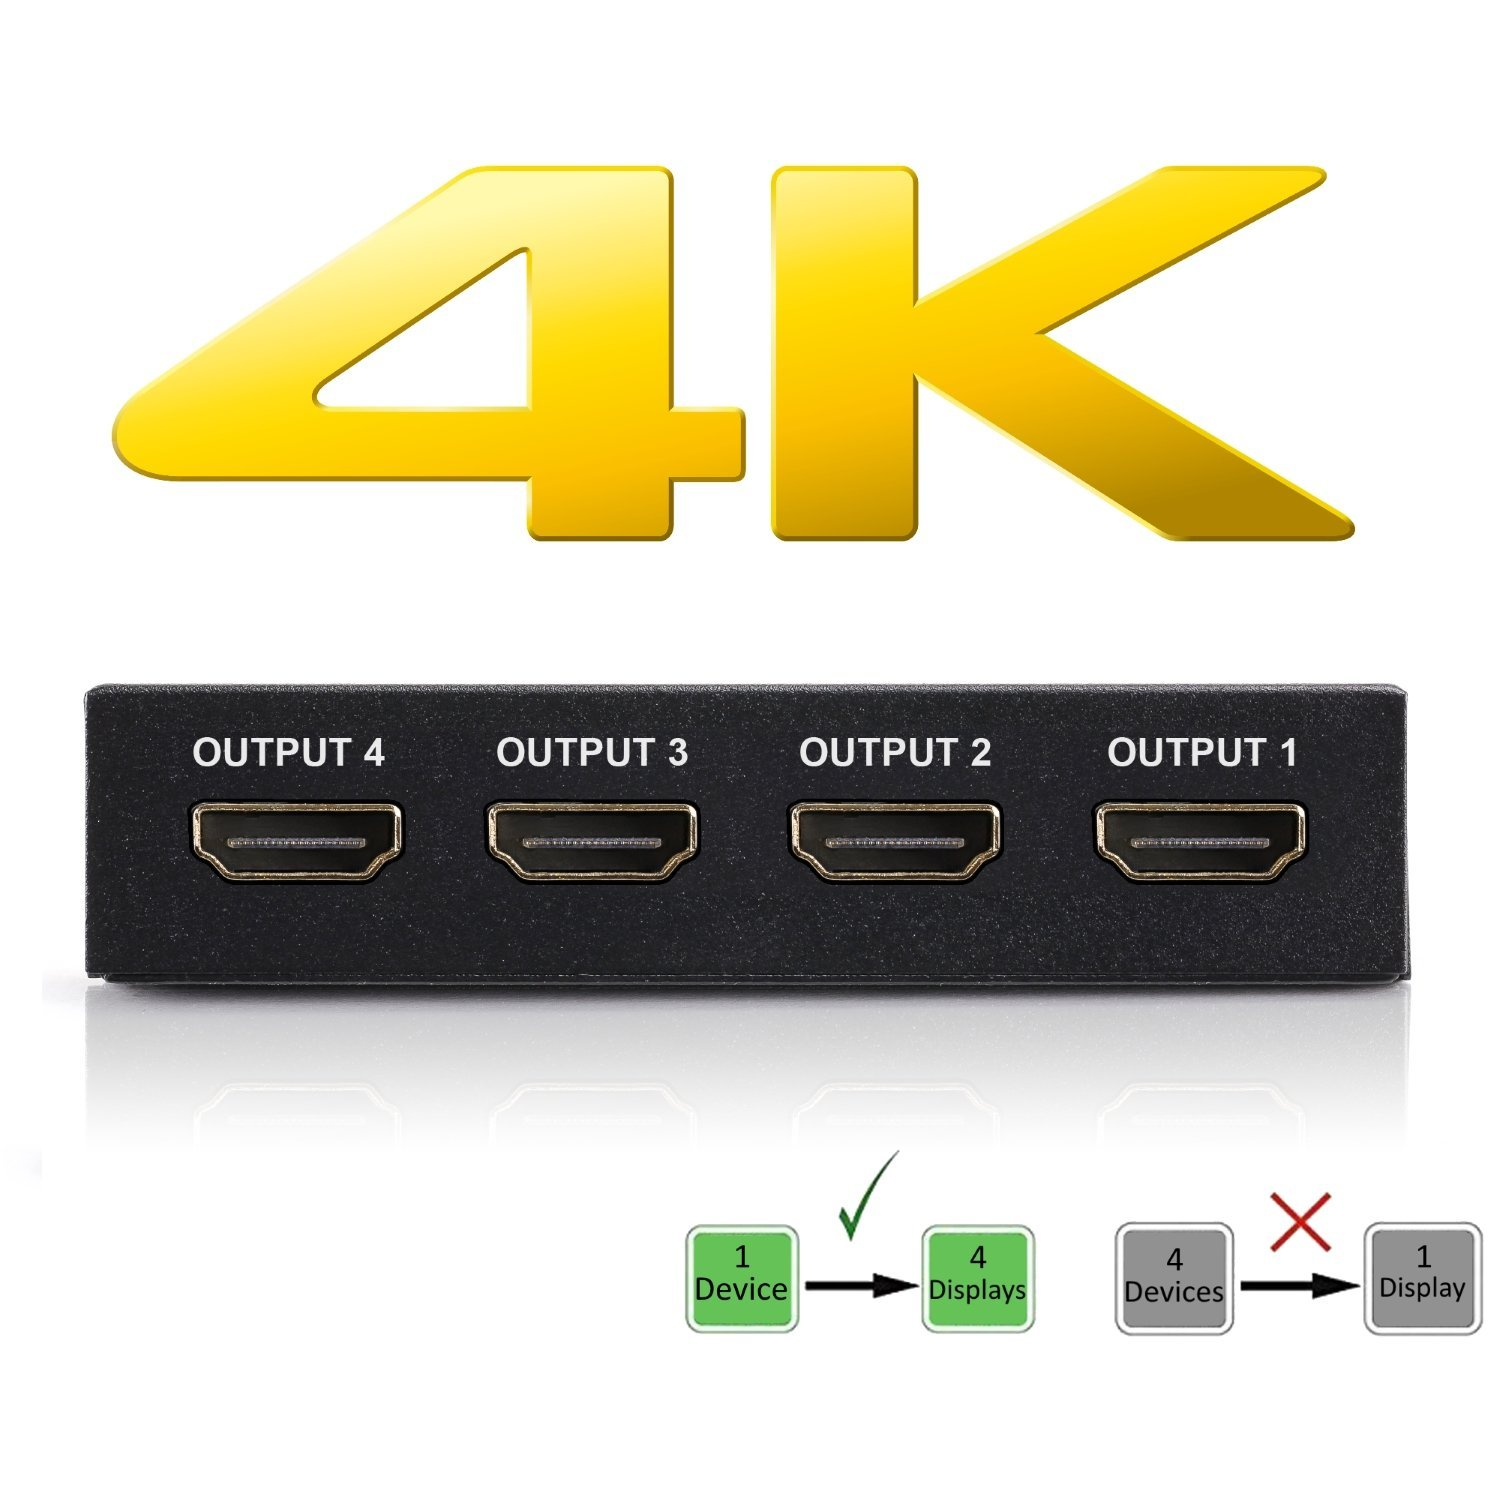 4K HDMI Splitter - 1 Input Device to 4 Displays. Save Money by Ditching